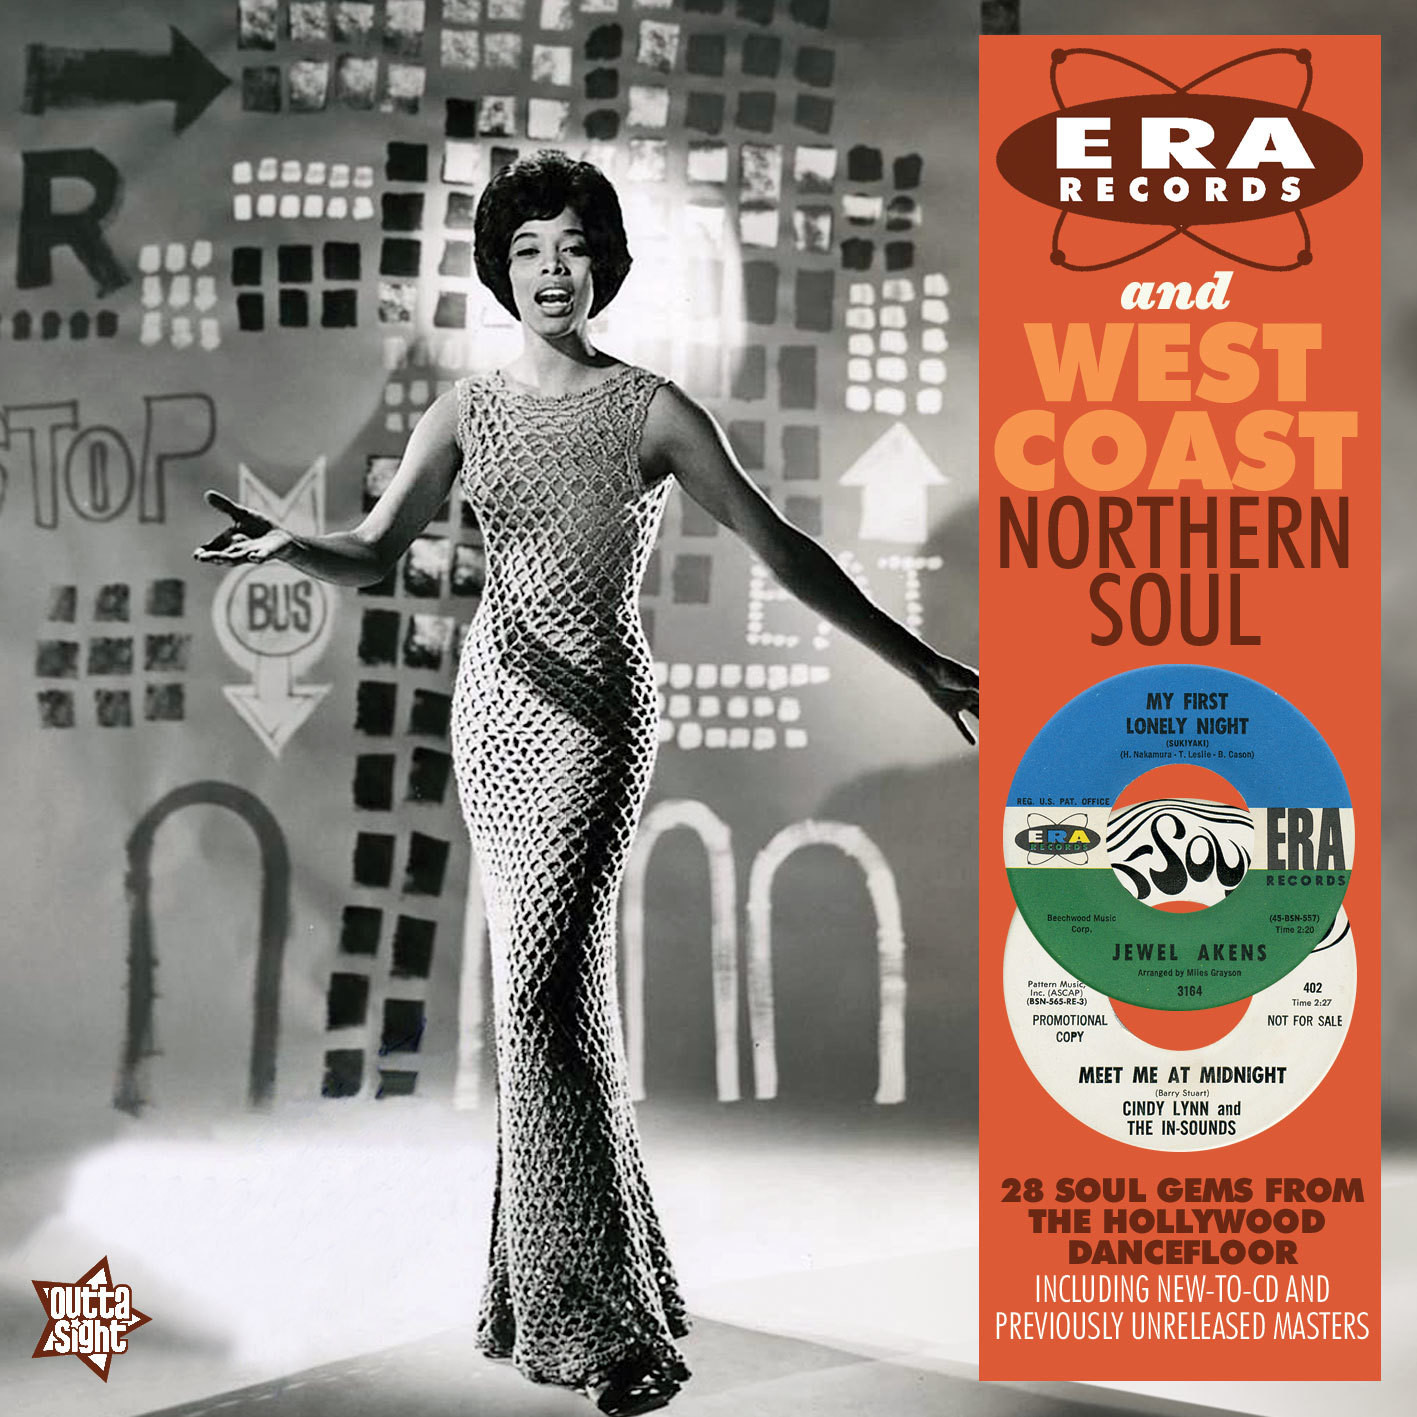 ERA RECORDS and West Coast Northern Soul